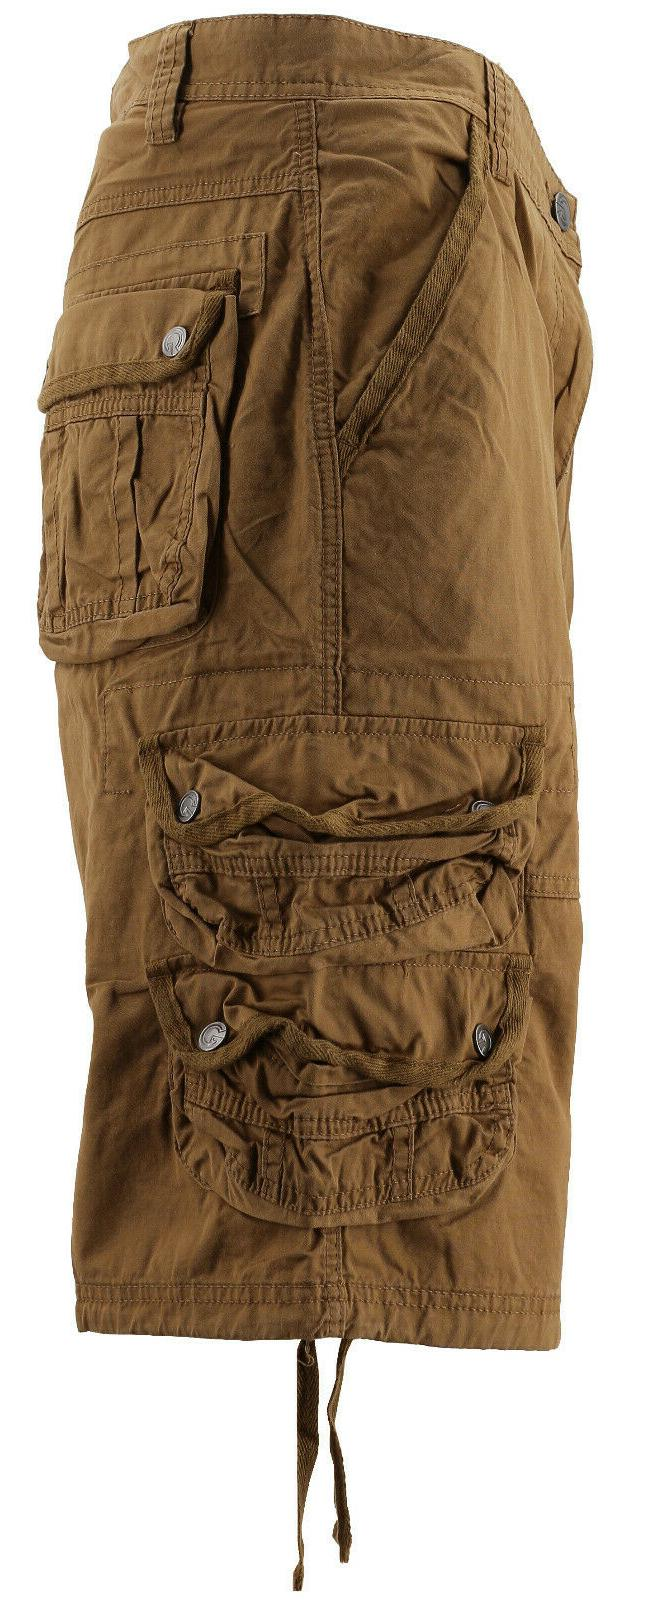 MSLM Men's Army Relaxed Fit Cotton Cargo Pocket Shorts Khaki